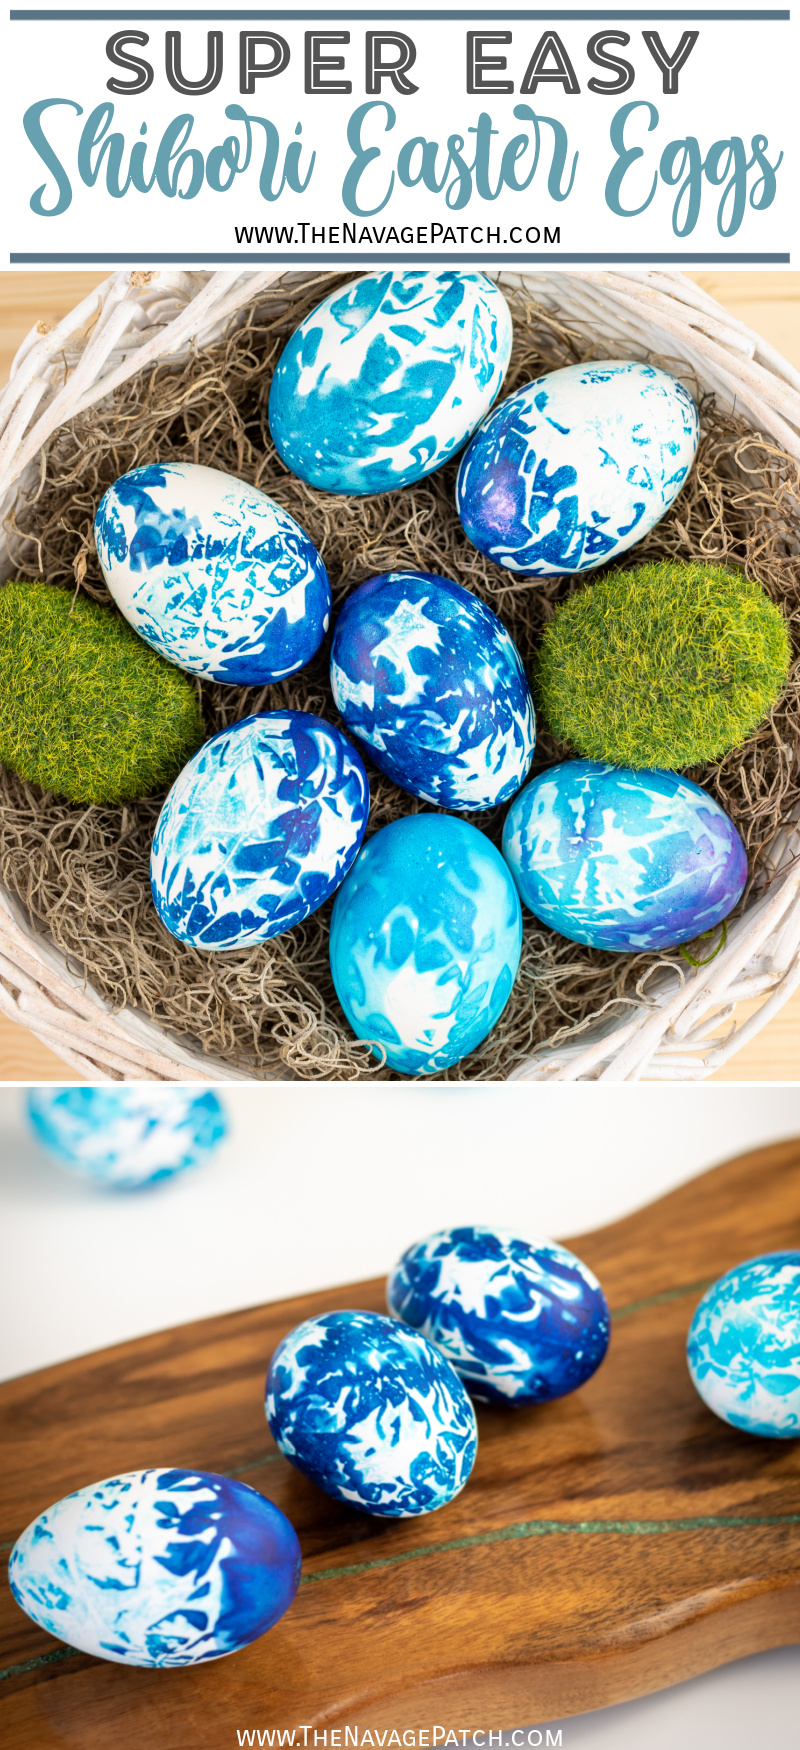 DIY Shibori Easter Eggs – TheNavagePatch.com